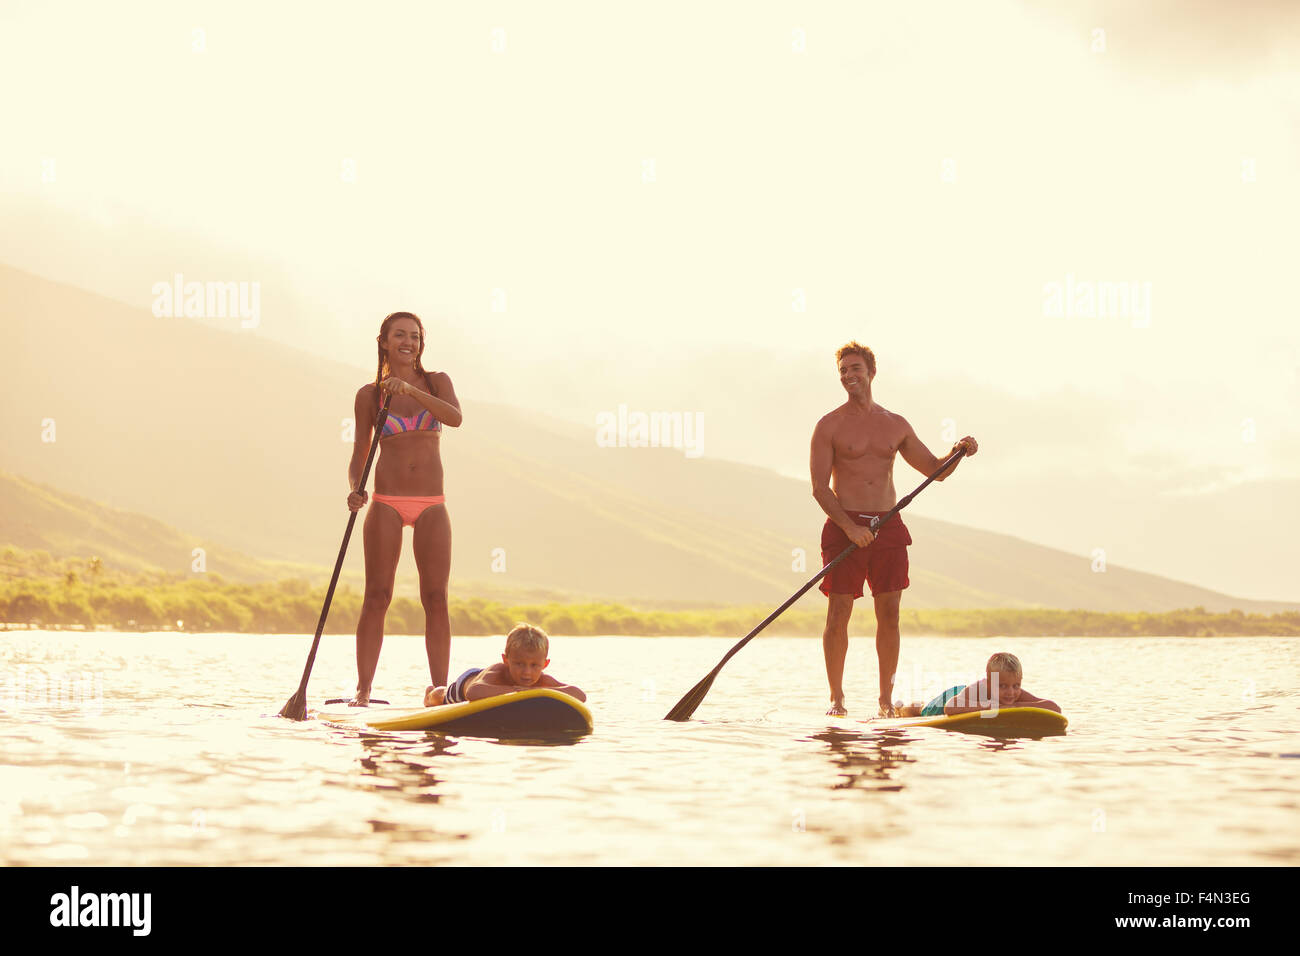 Family stand up paddling at sunrise, Summer fun outdoor lifestyle - Stock Image